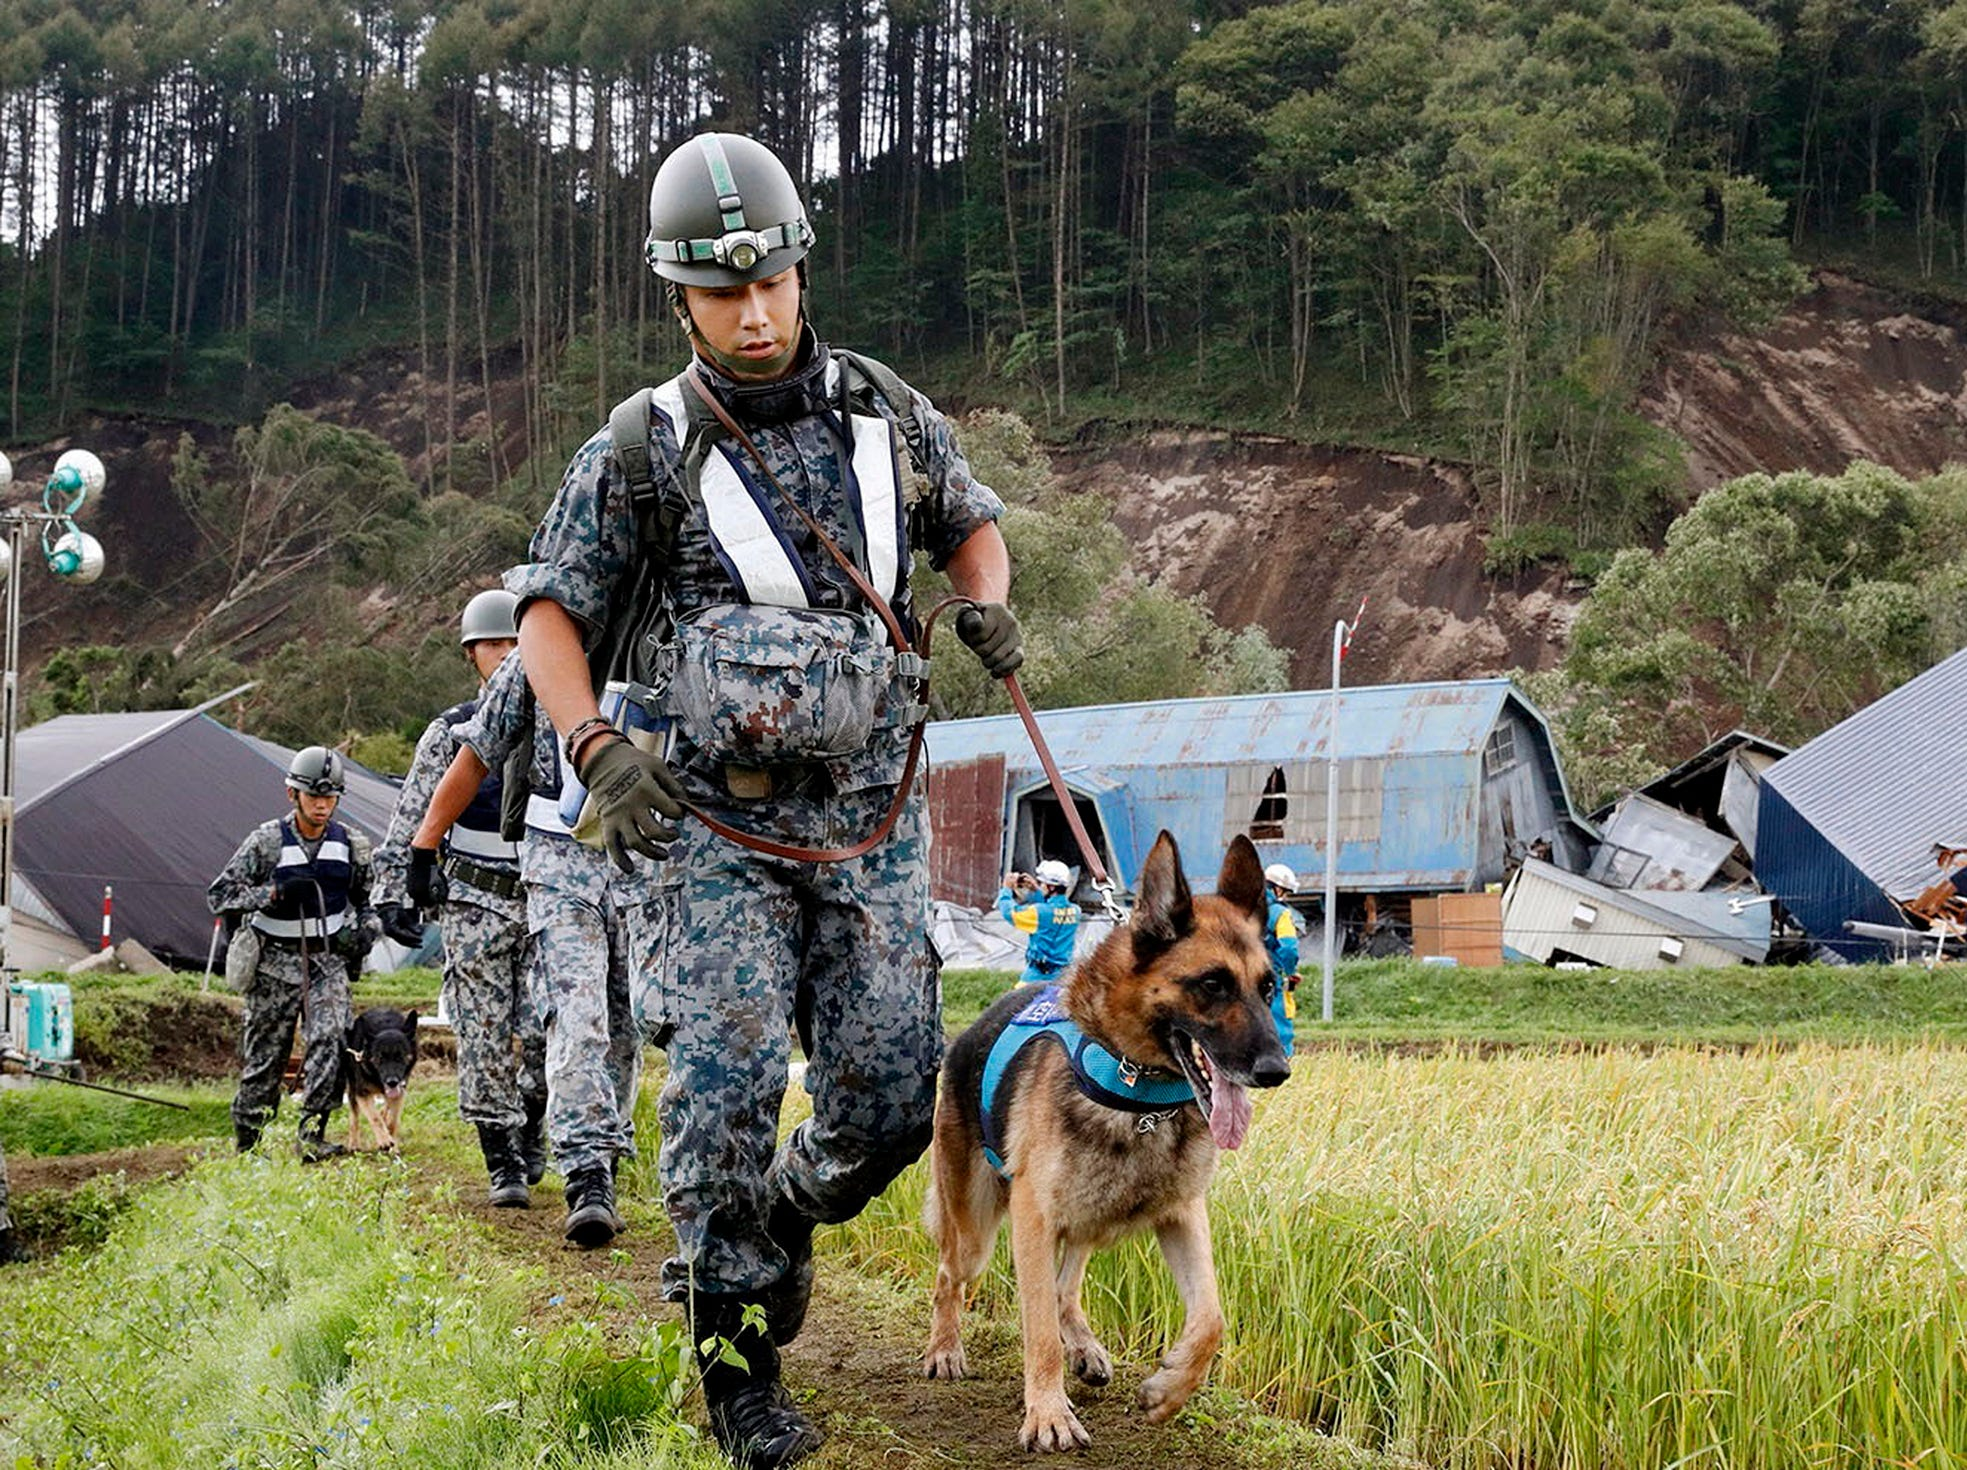 Japan Ground Self-Defense Force personnel with police dogs prepare to search for missing persons at the site of a landslide triggered by a powerful earthquake in Atsuma town, Hokkaido, northern Japan on Friday. A powerful earthquake Sept. 6,  triggered dozens of landslides that crushed houses under torrents of dirt, rocks and timber, prompting frantic efforts to unearth any survivors.